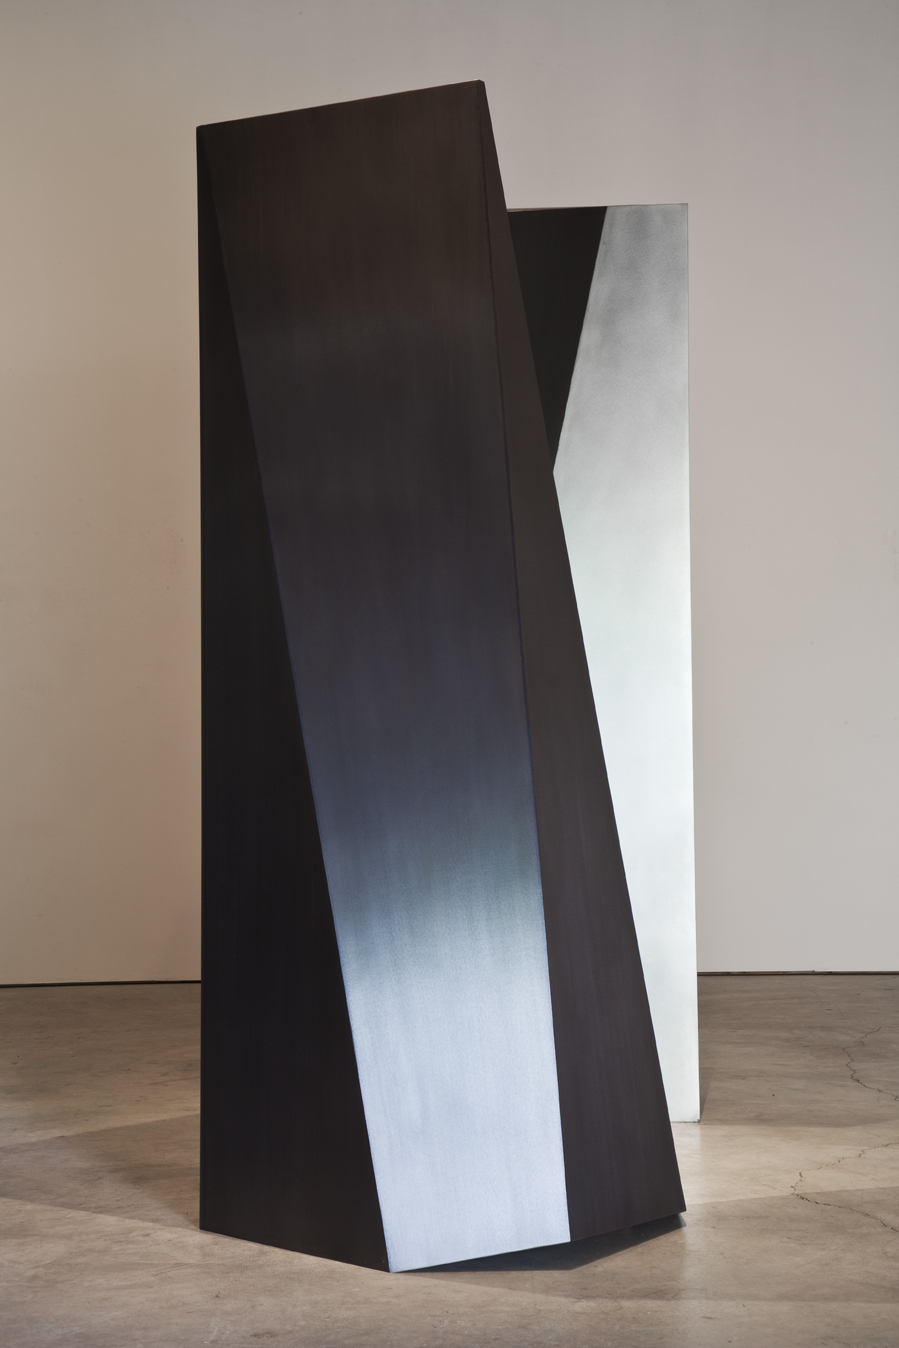 Ultime dialogue  (2012)   Laiton et acier inoxydable, 229 x 220 x 116 cm. photo : Michel Dubreuil